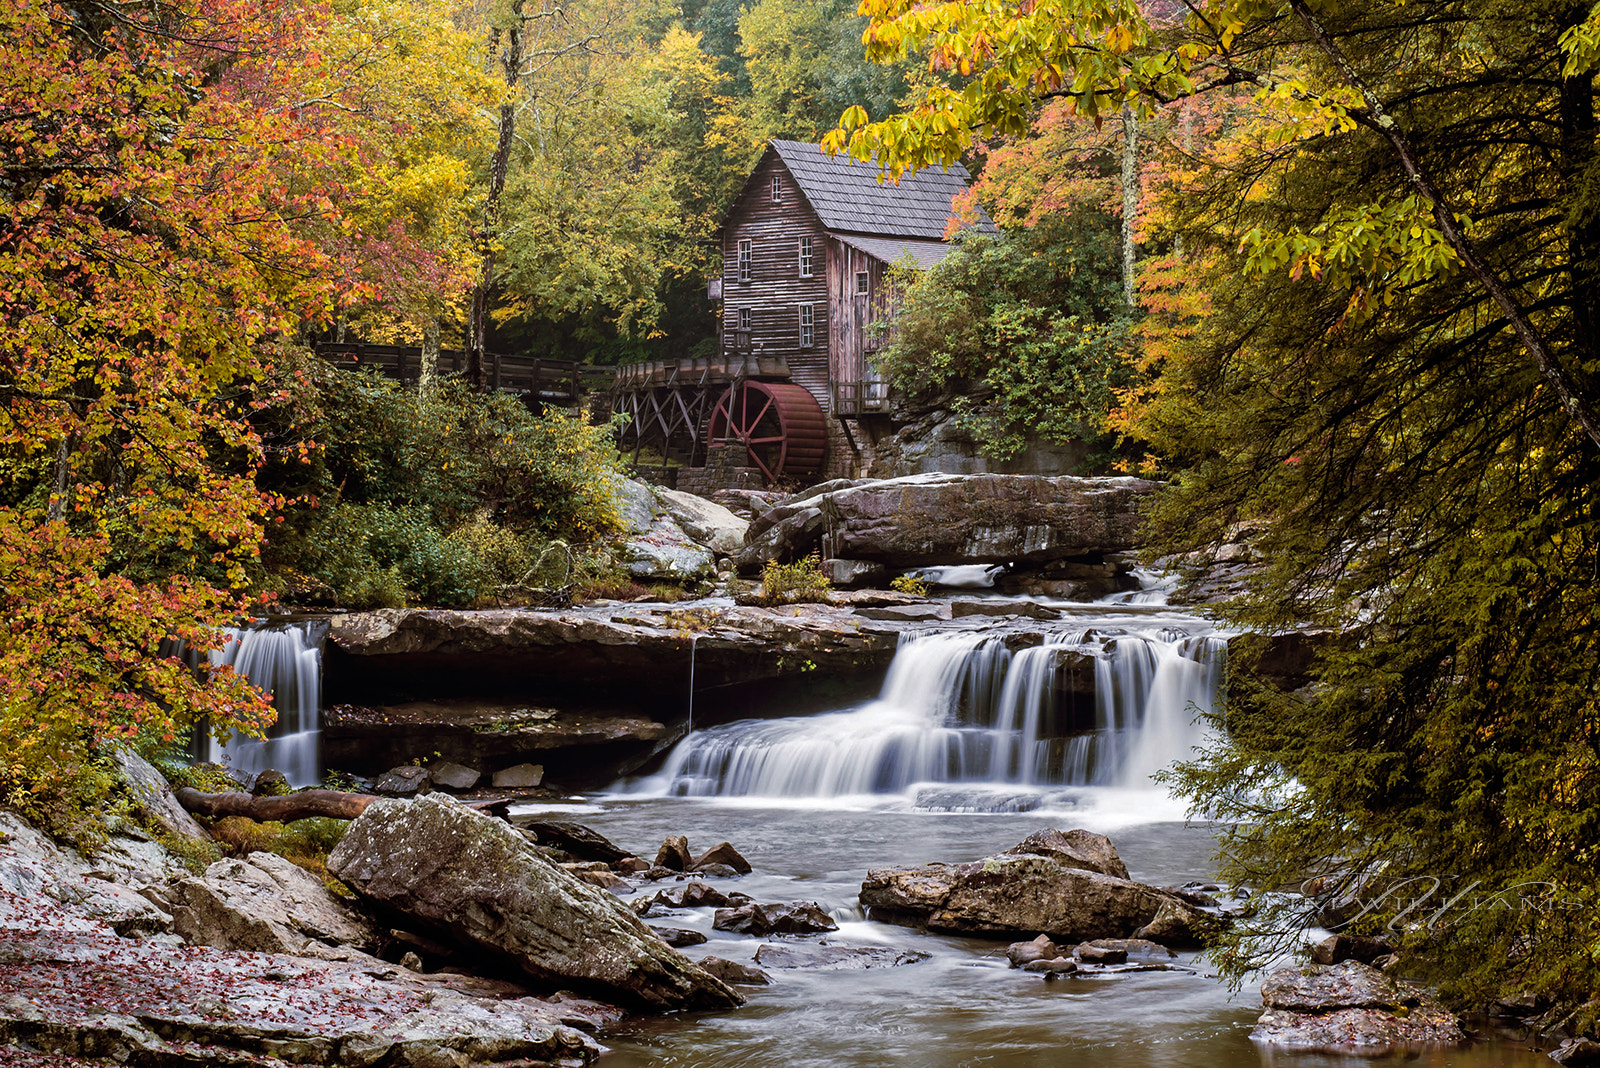 Photograph Glade Creek Grist Mill by Tim Williams on 500px